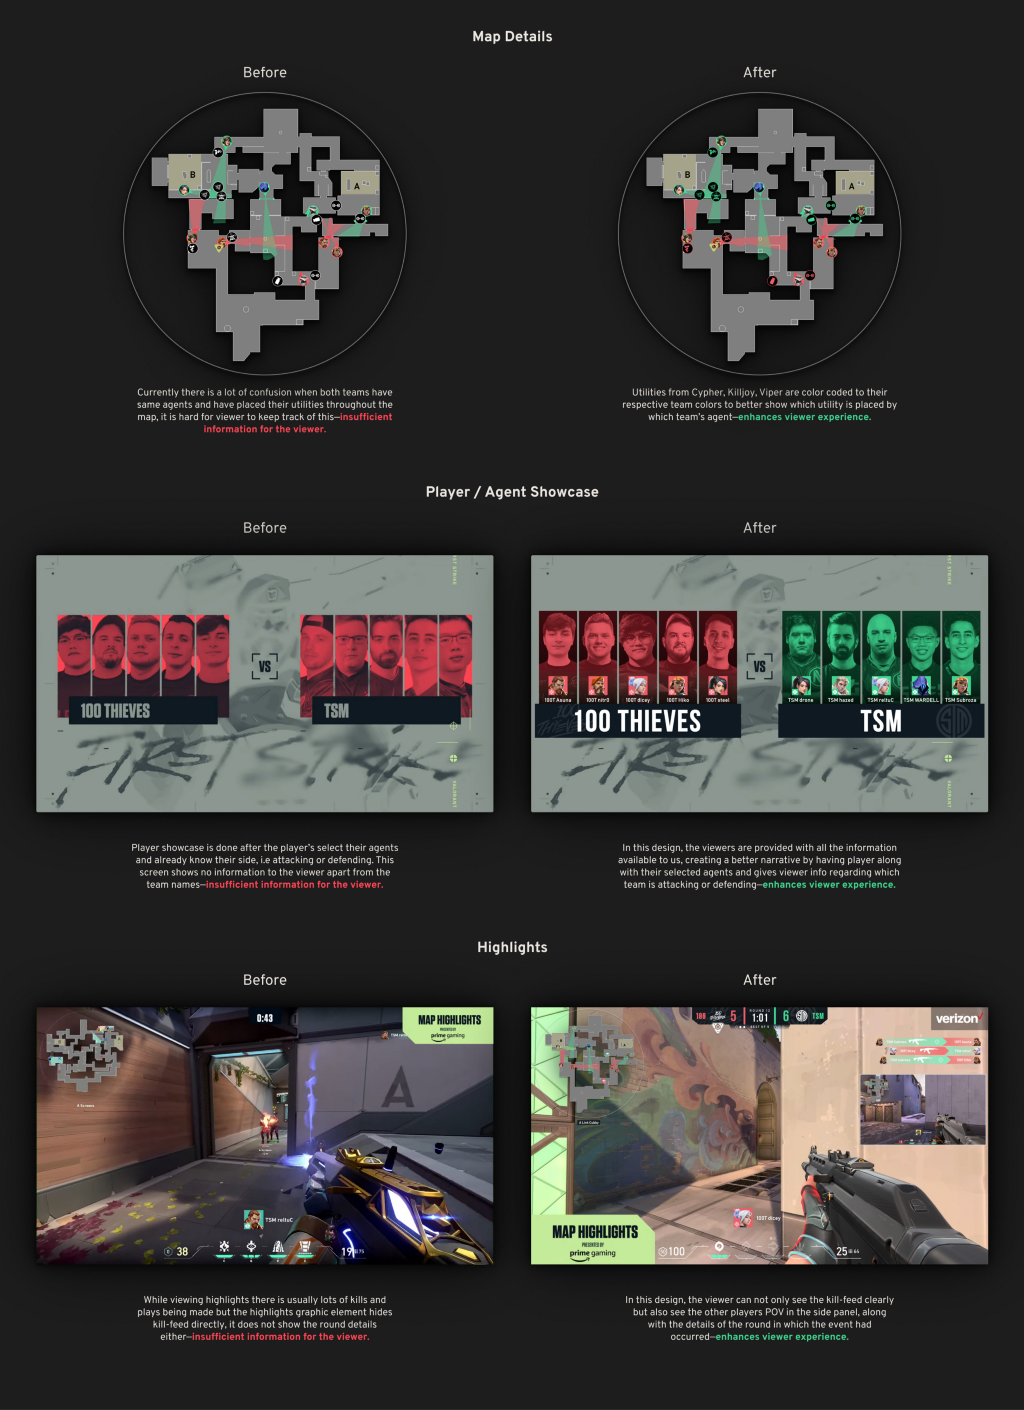 Additional designs along with before and after screens (by Sumeet Pandhare aka issumeetp)